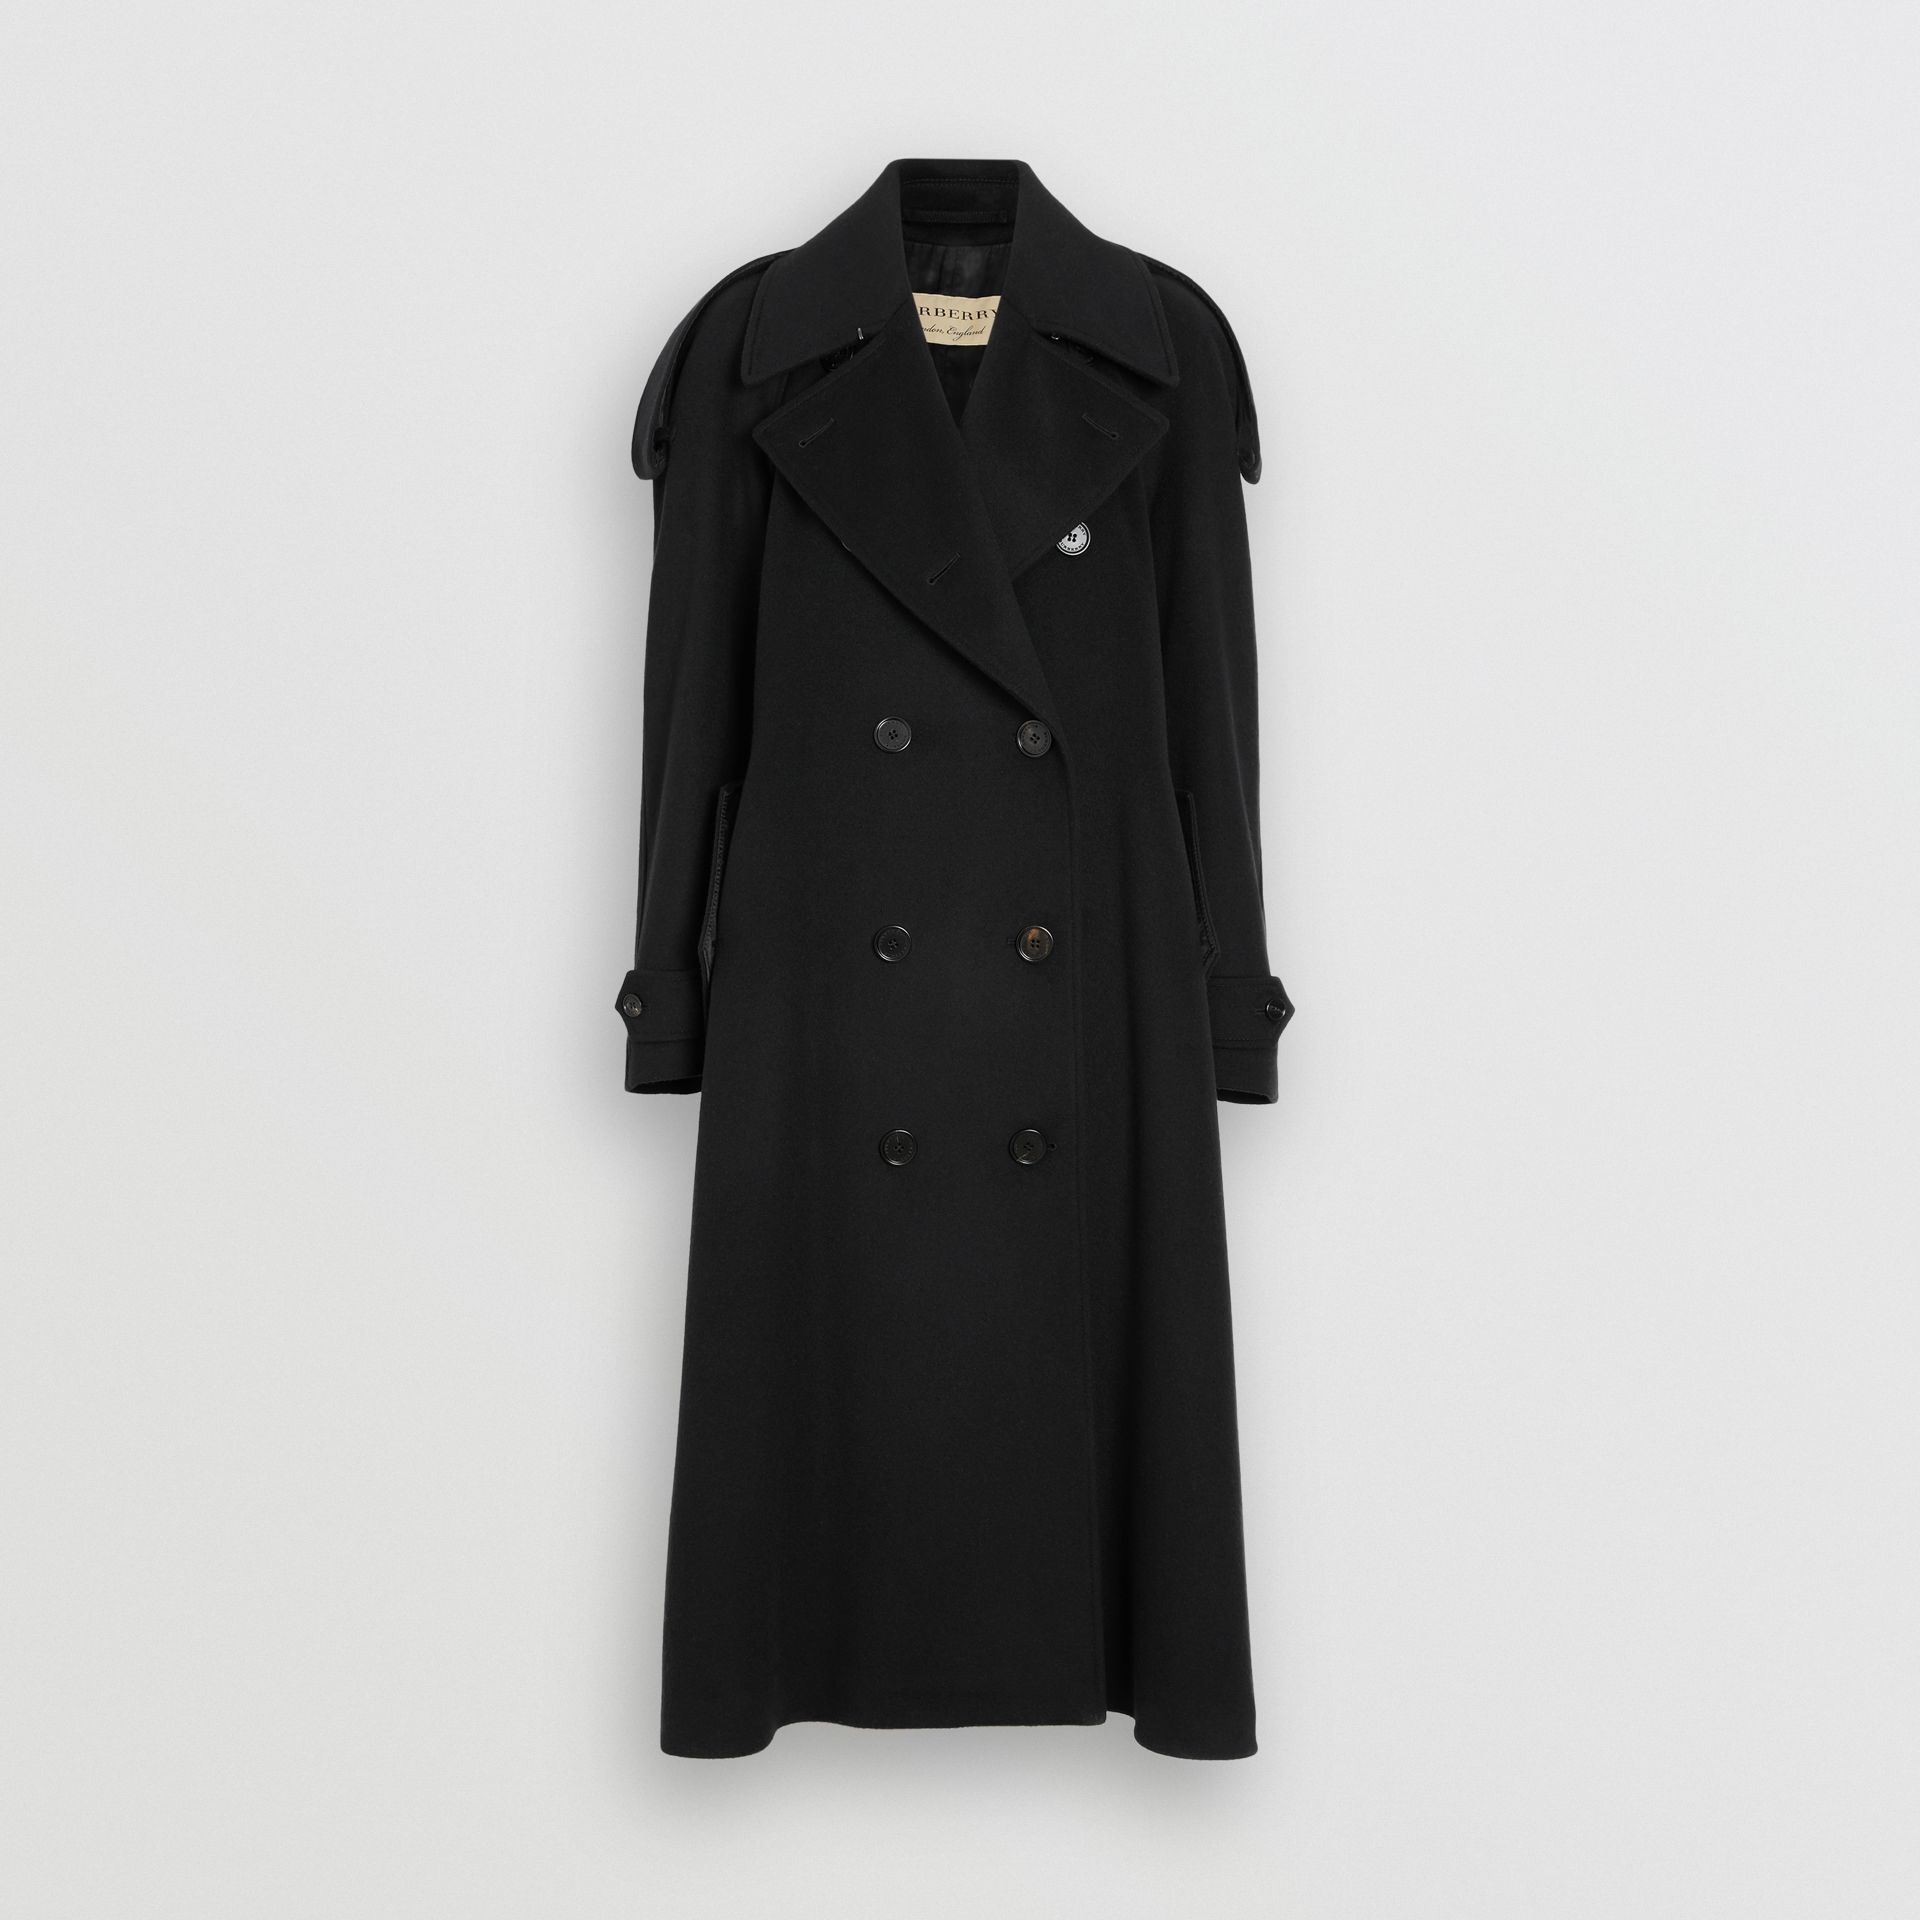 Wool Cashmere Double-breasted Coat in Black - Women | Burberry Canada - gallery image 3